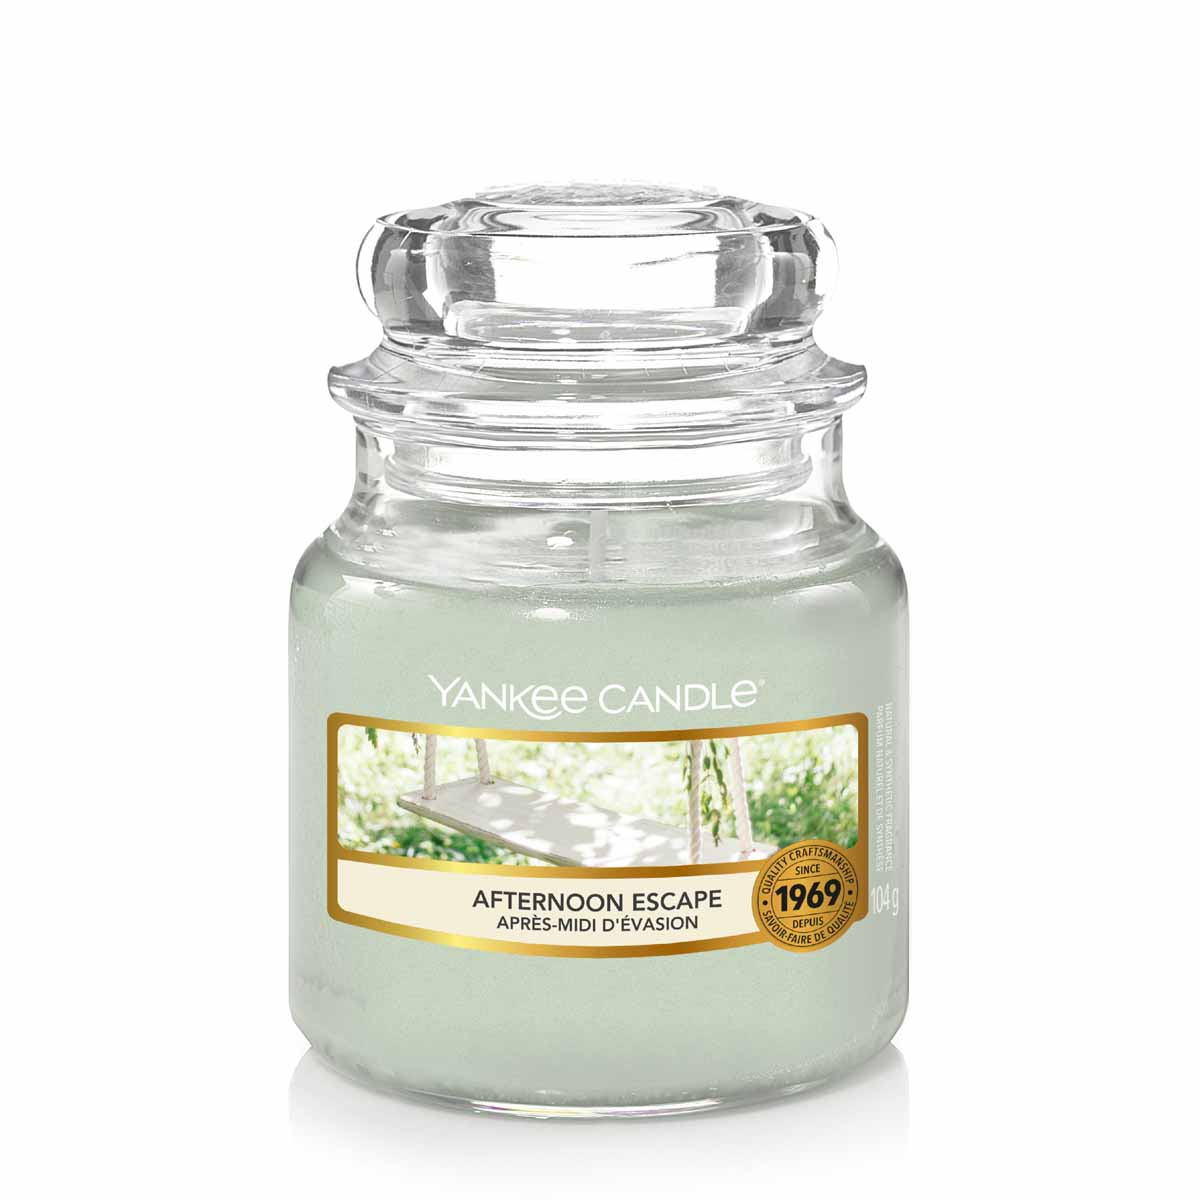 Yankee Candle Afternoon Escape Giara Piccola